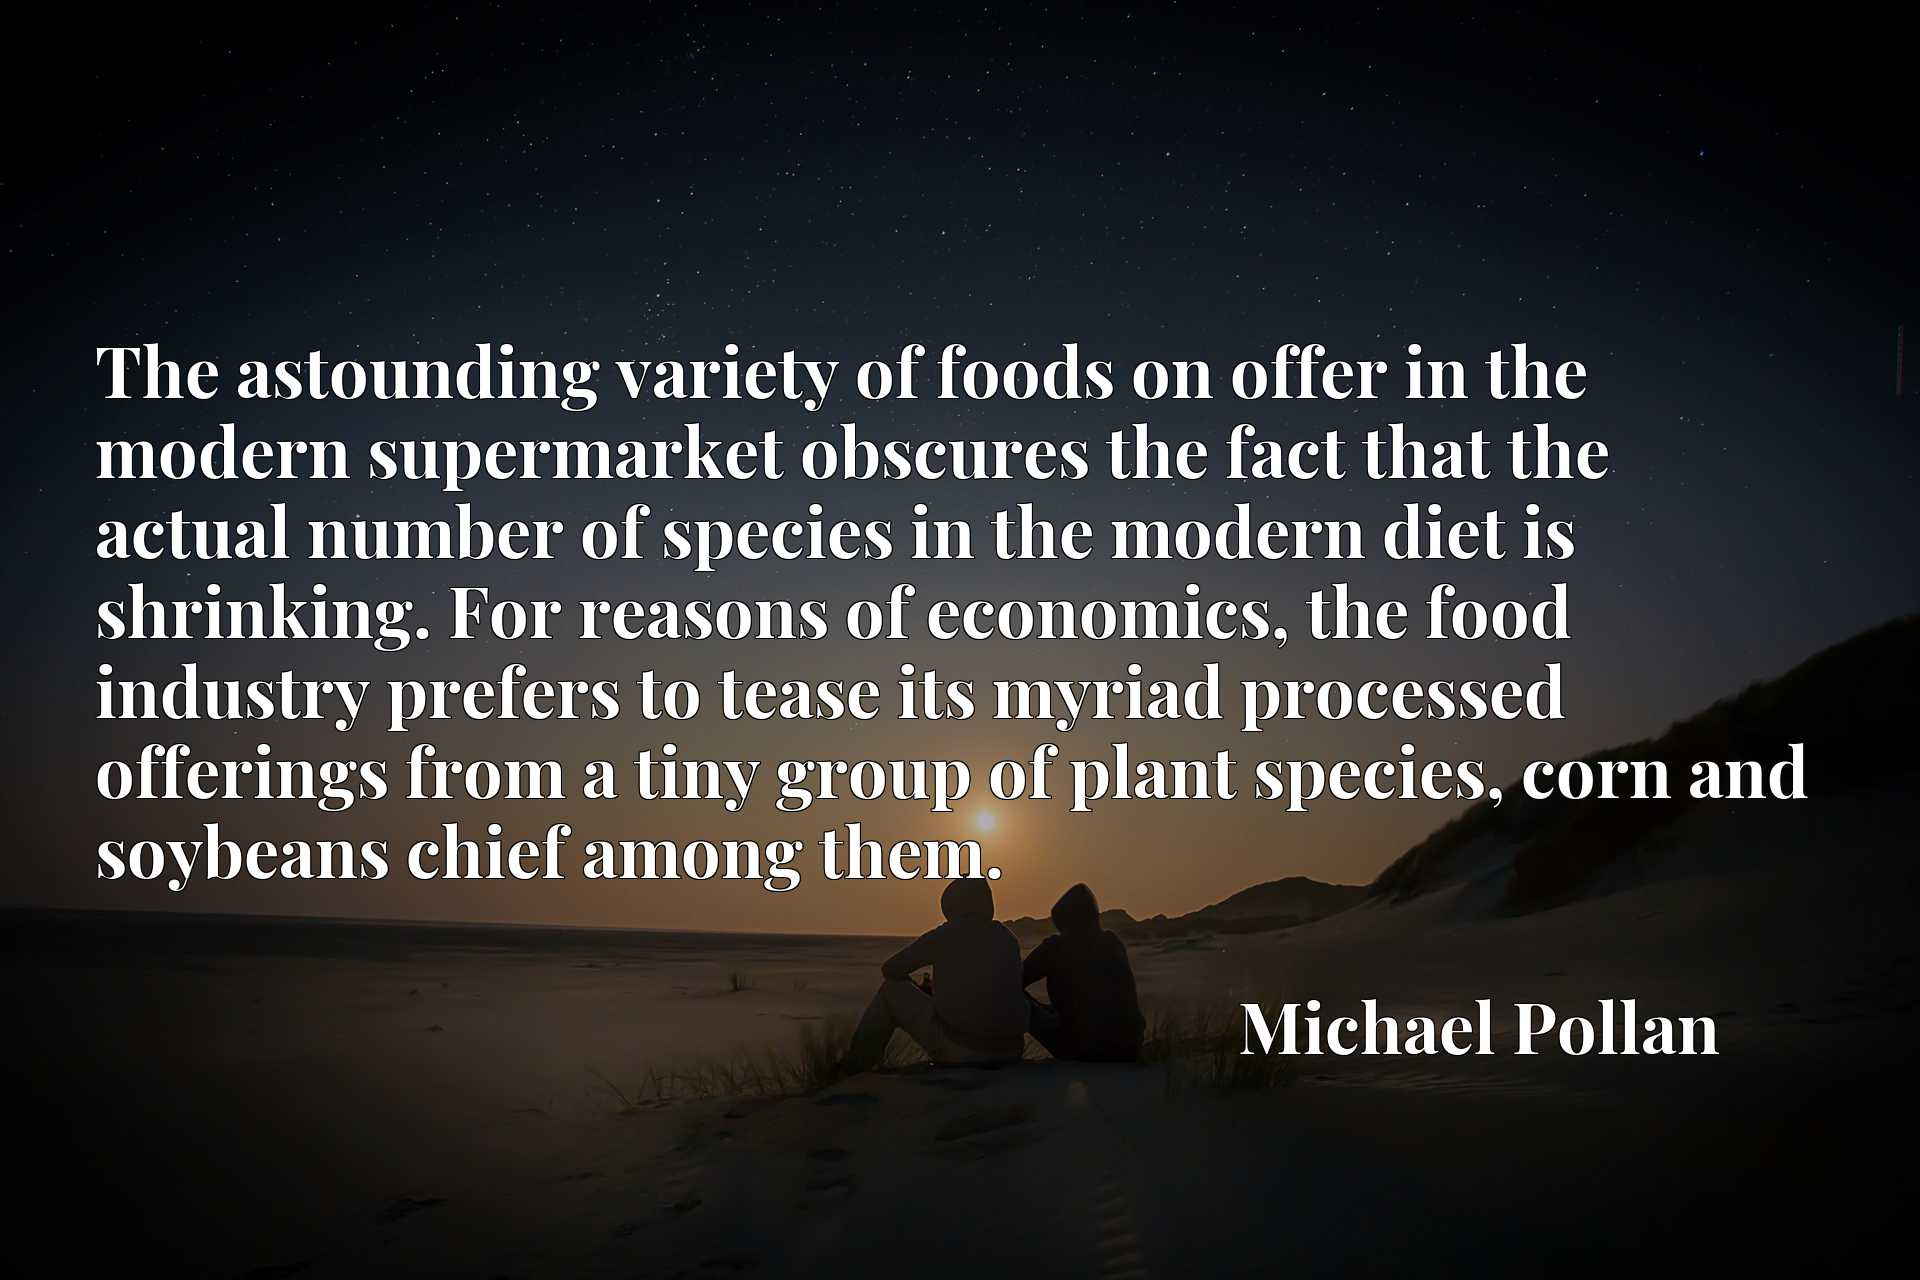 The astounding variety of foods on offer in the modern supermarket obscures the fact that the actual number of species in the modern diet is shrinking. For reasons of economics, the food industry prefers to tease its myriad processed offerings from a tiny group of plant species, corn and soybeans chief among them.